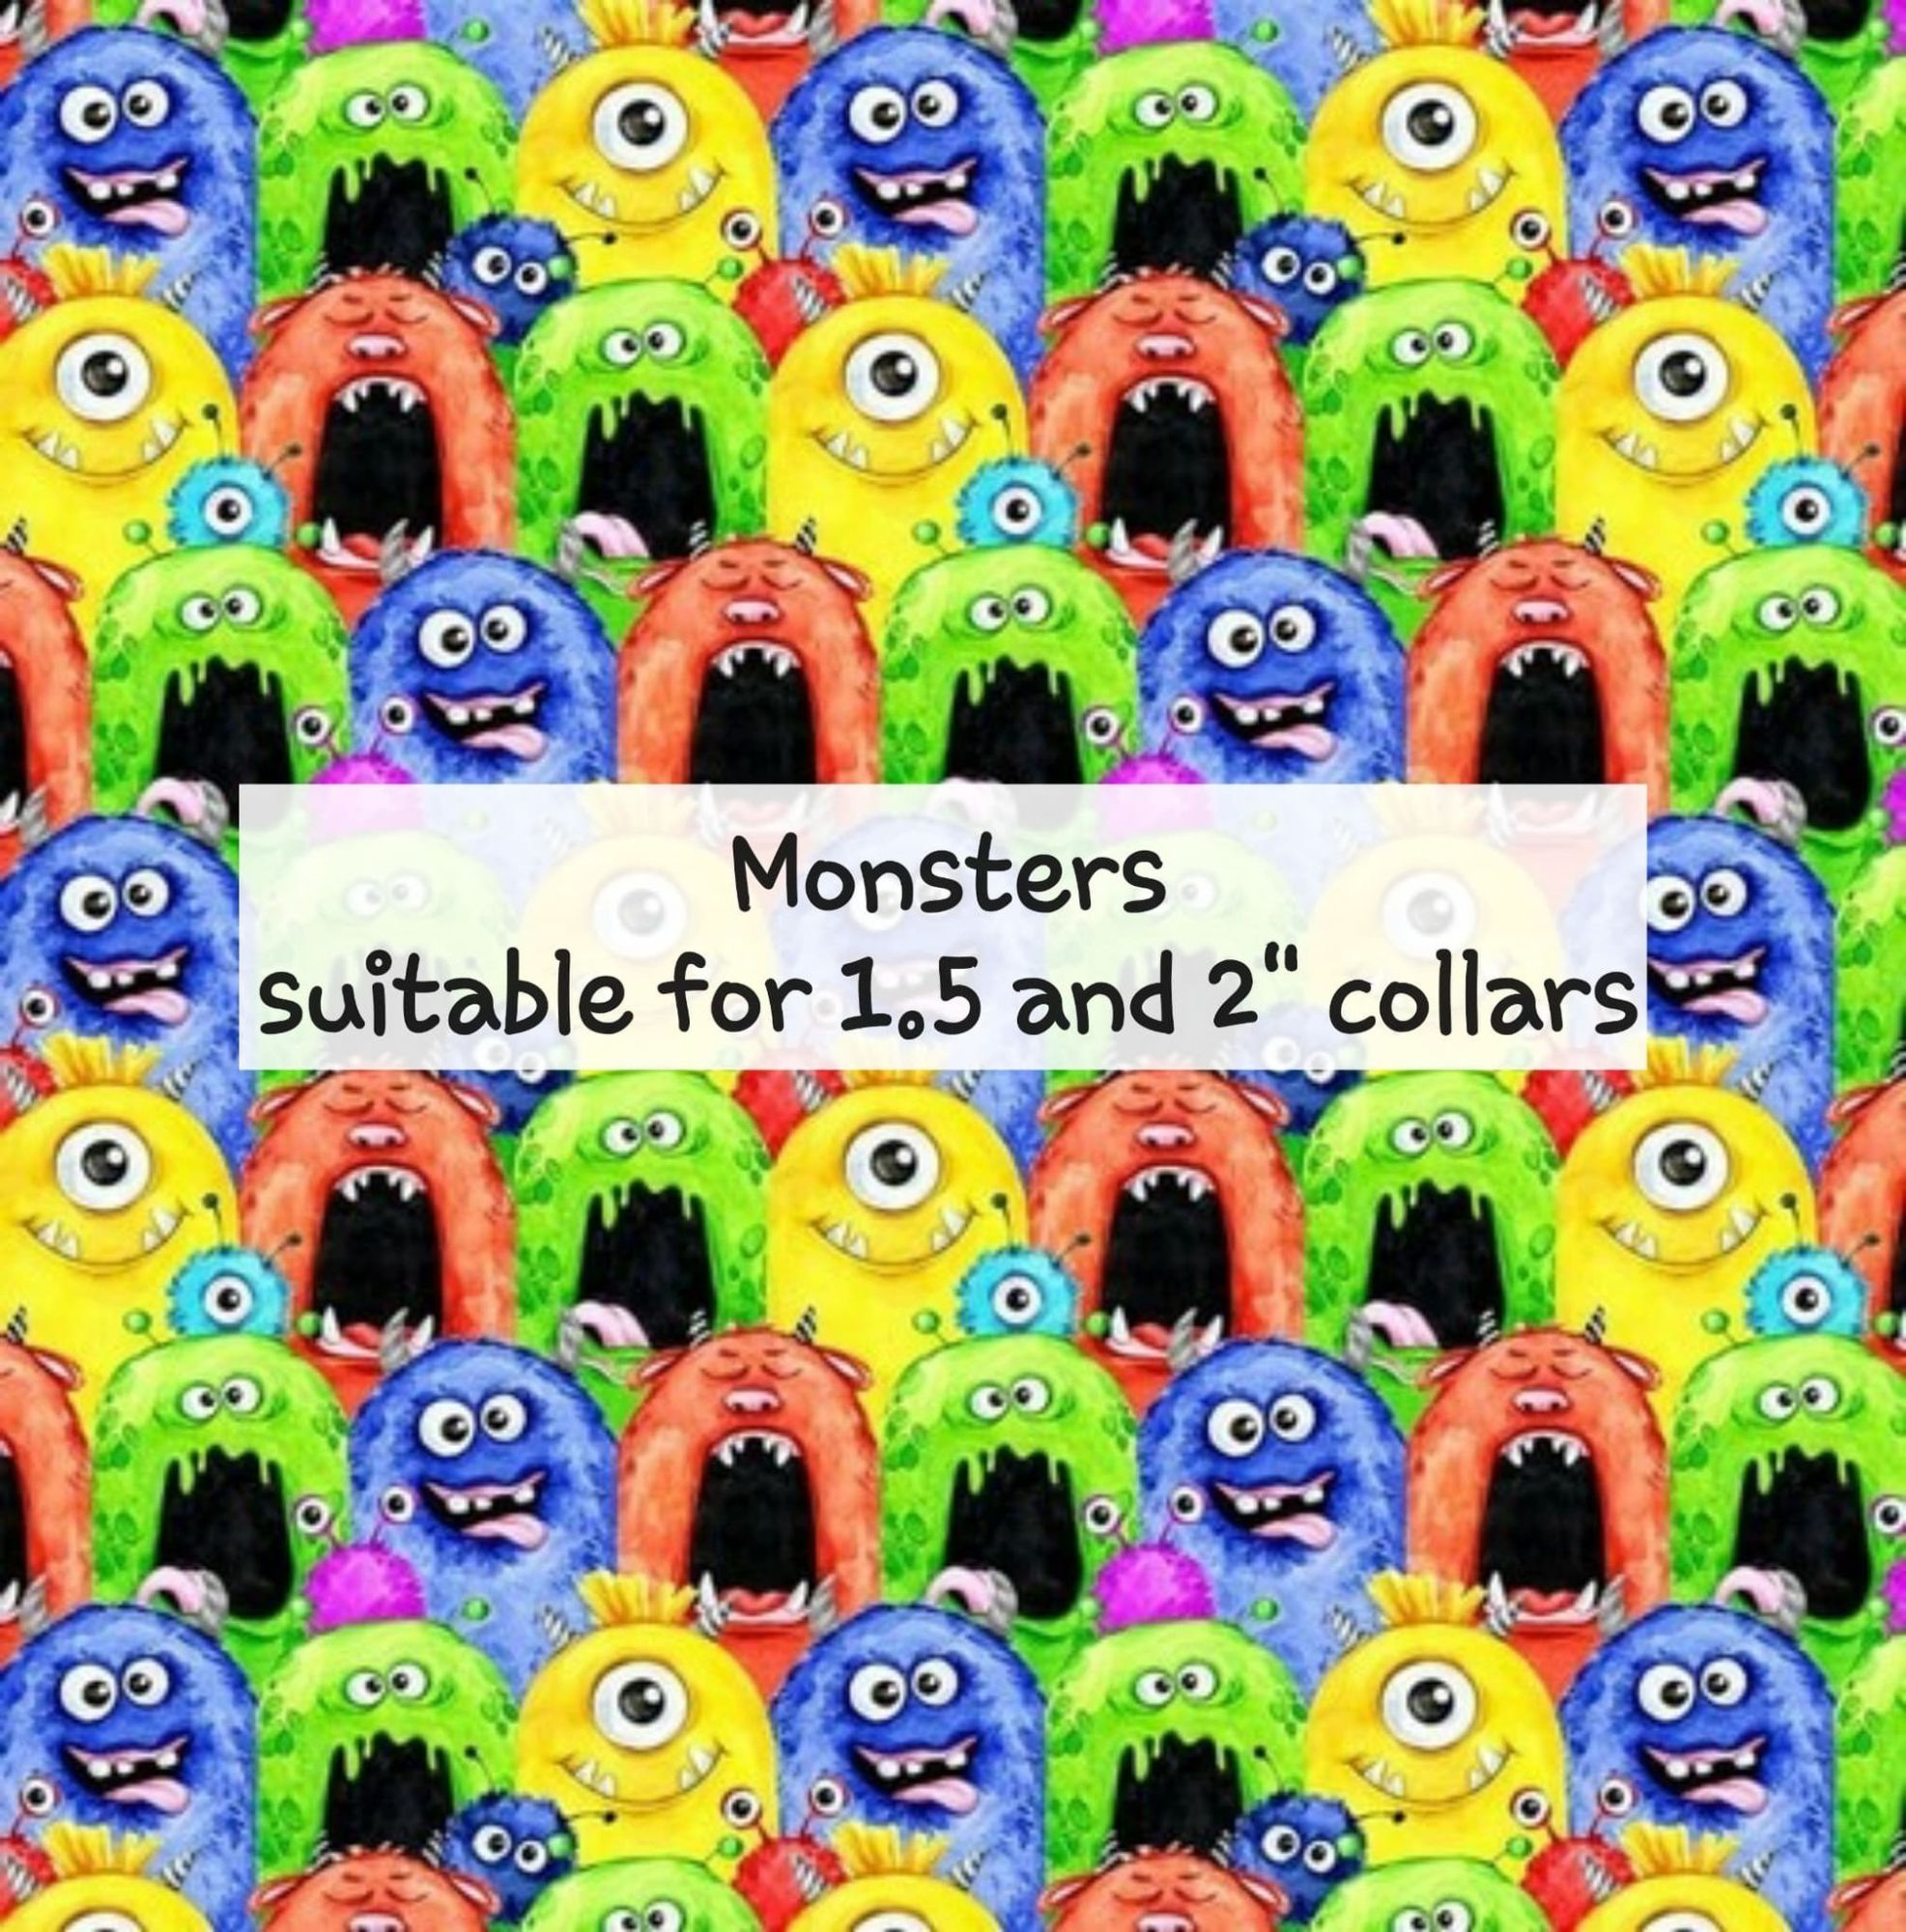 Monsters - Suitable for 1.5 and 2 inch collars